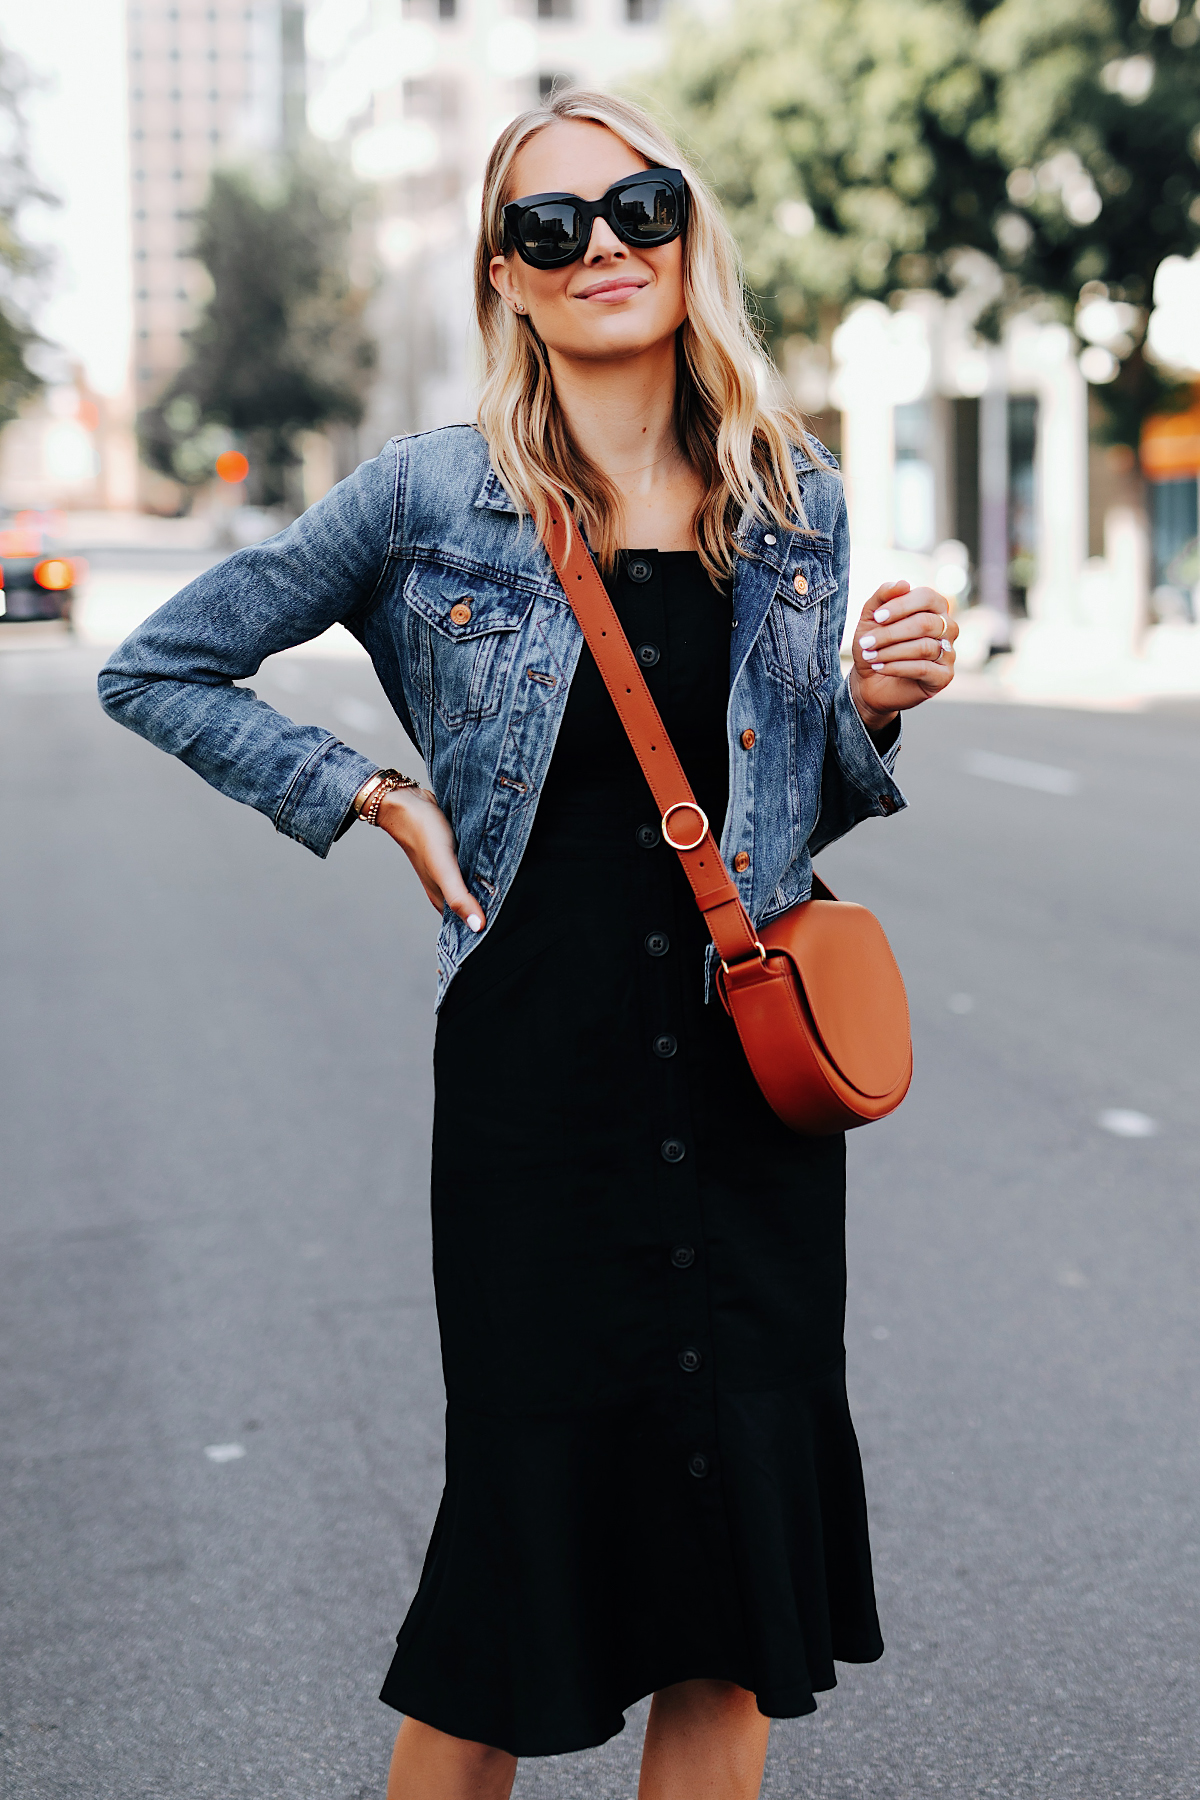 Fashion Jackson Wearing Banana Republic Black Button Front Dress Denim Jacket Tan Crossbody Handbag